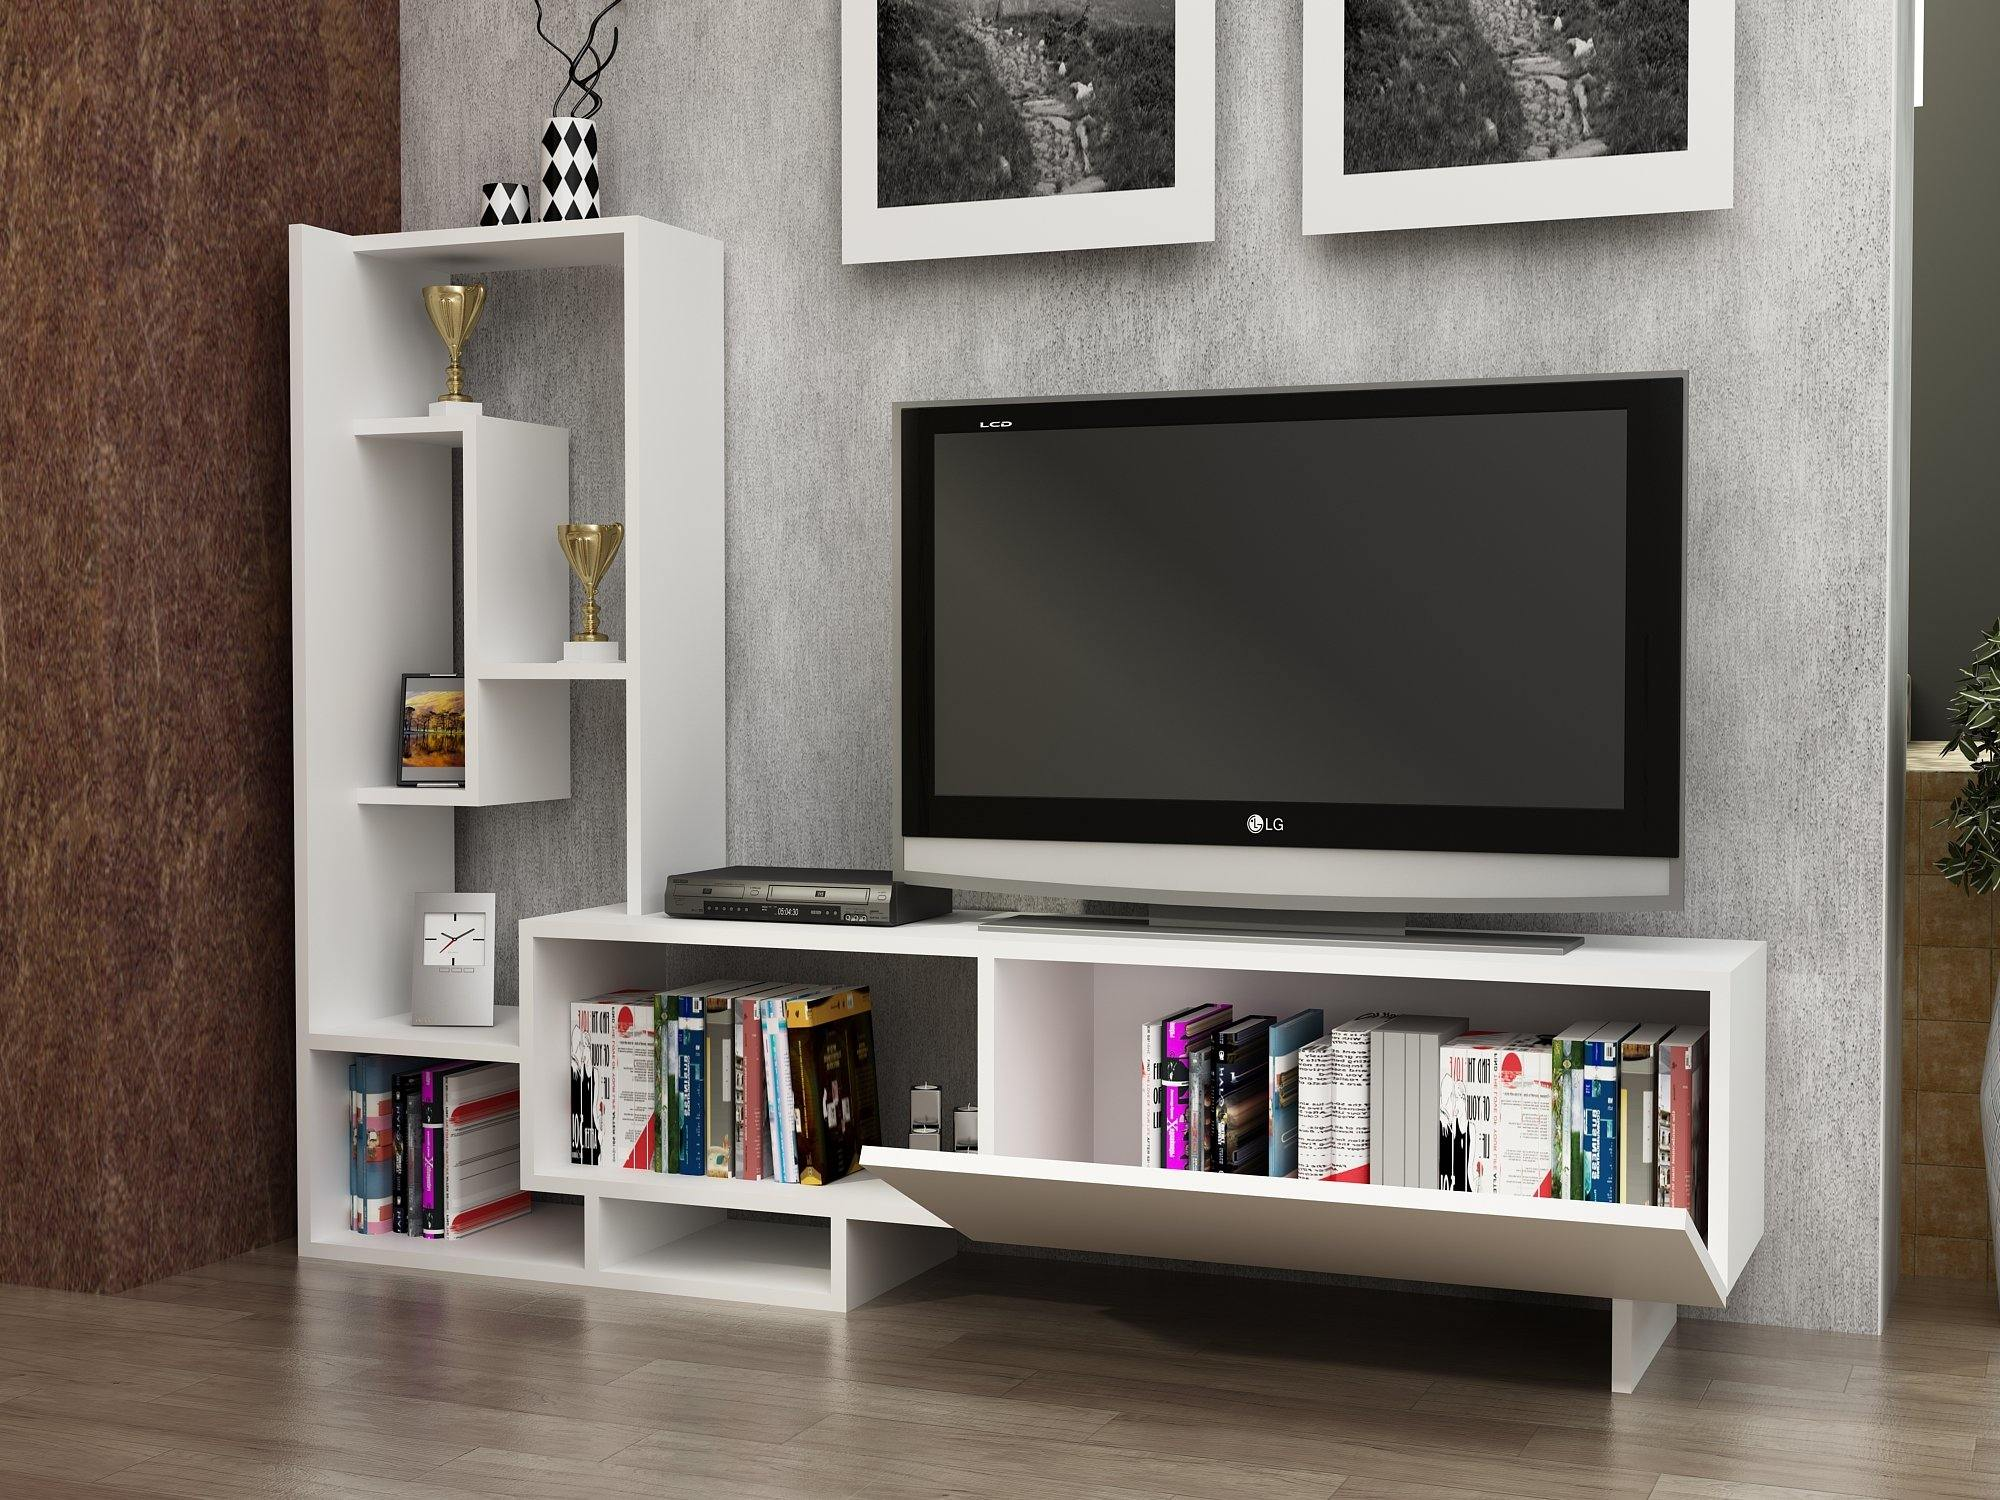 Pegai TV Stand & Entertainment Center for TVs up to 55